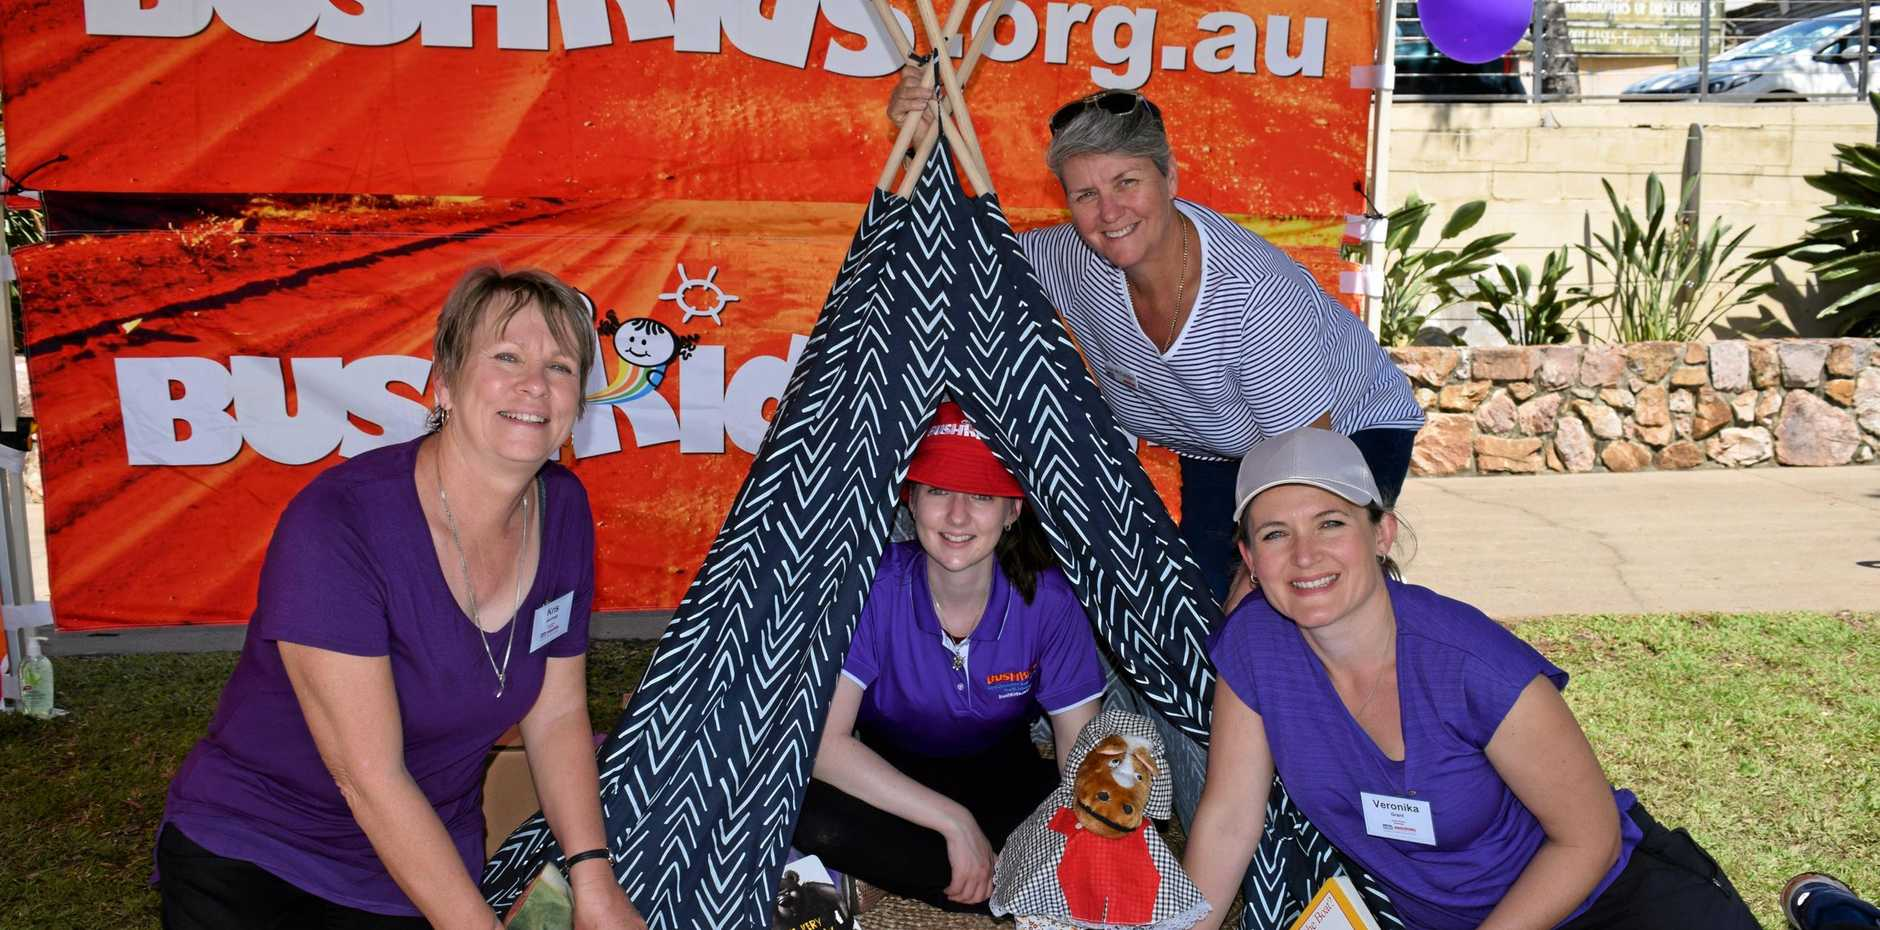 Bushkids Hervey Bay (from left) Kris Jennings, Sara McCarron, Veronika Grant and Lisa McCudden are an early intervention team and the gateway to NDIS for children 0-6years had a interactive stall at Life Choice Community Day in the Park.